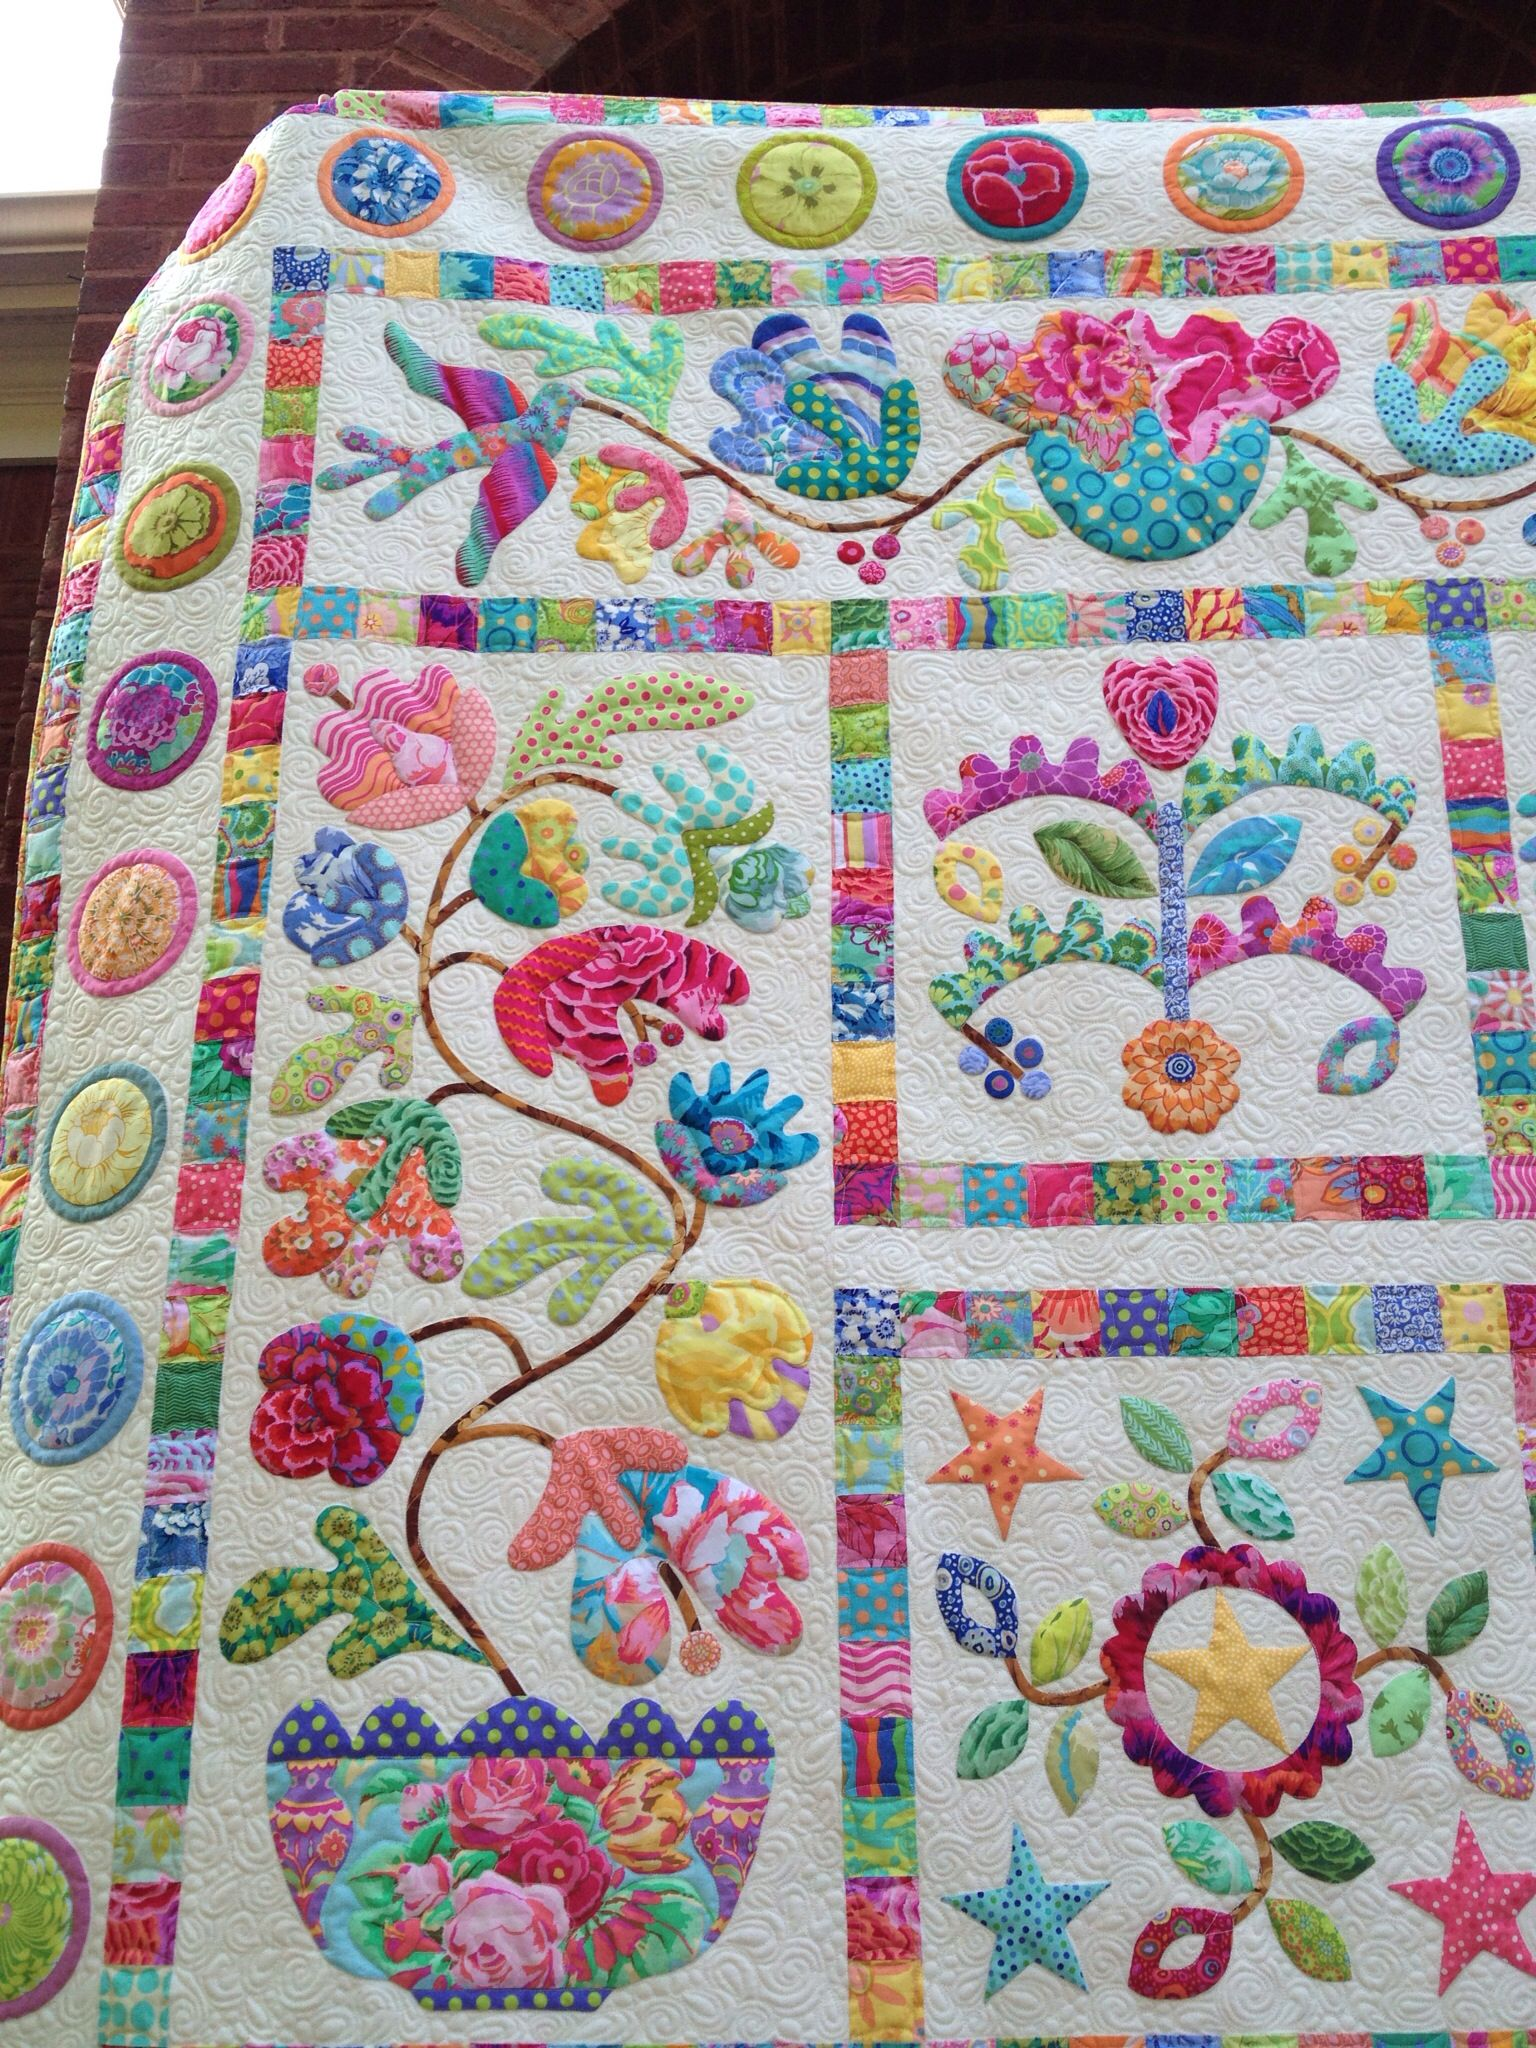 Kim Mclean Quilt Patterns.Well Here It Is My Finished Flower Pots Quilt By Kim Mclean